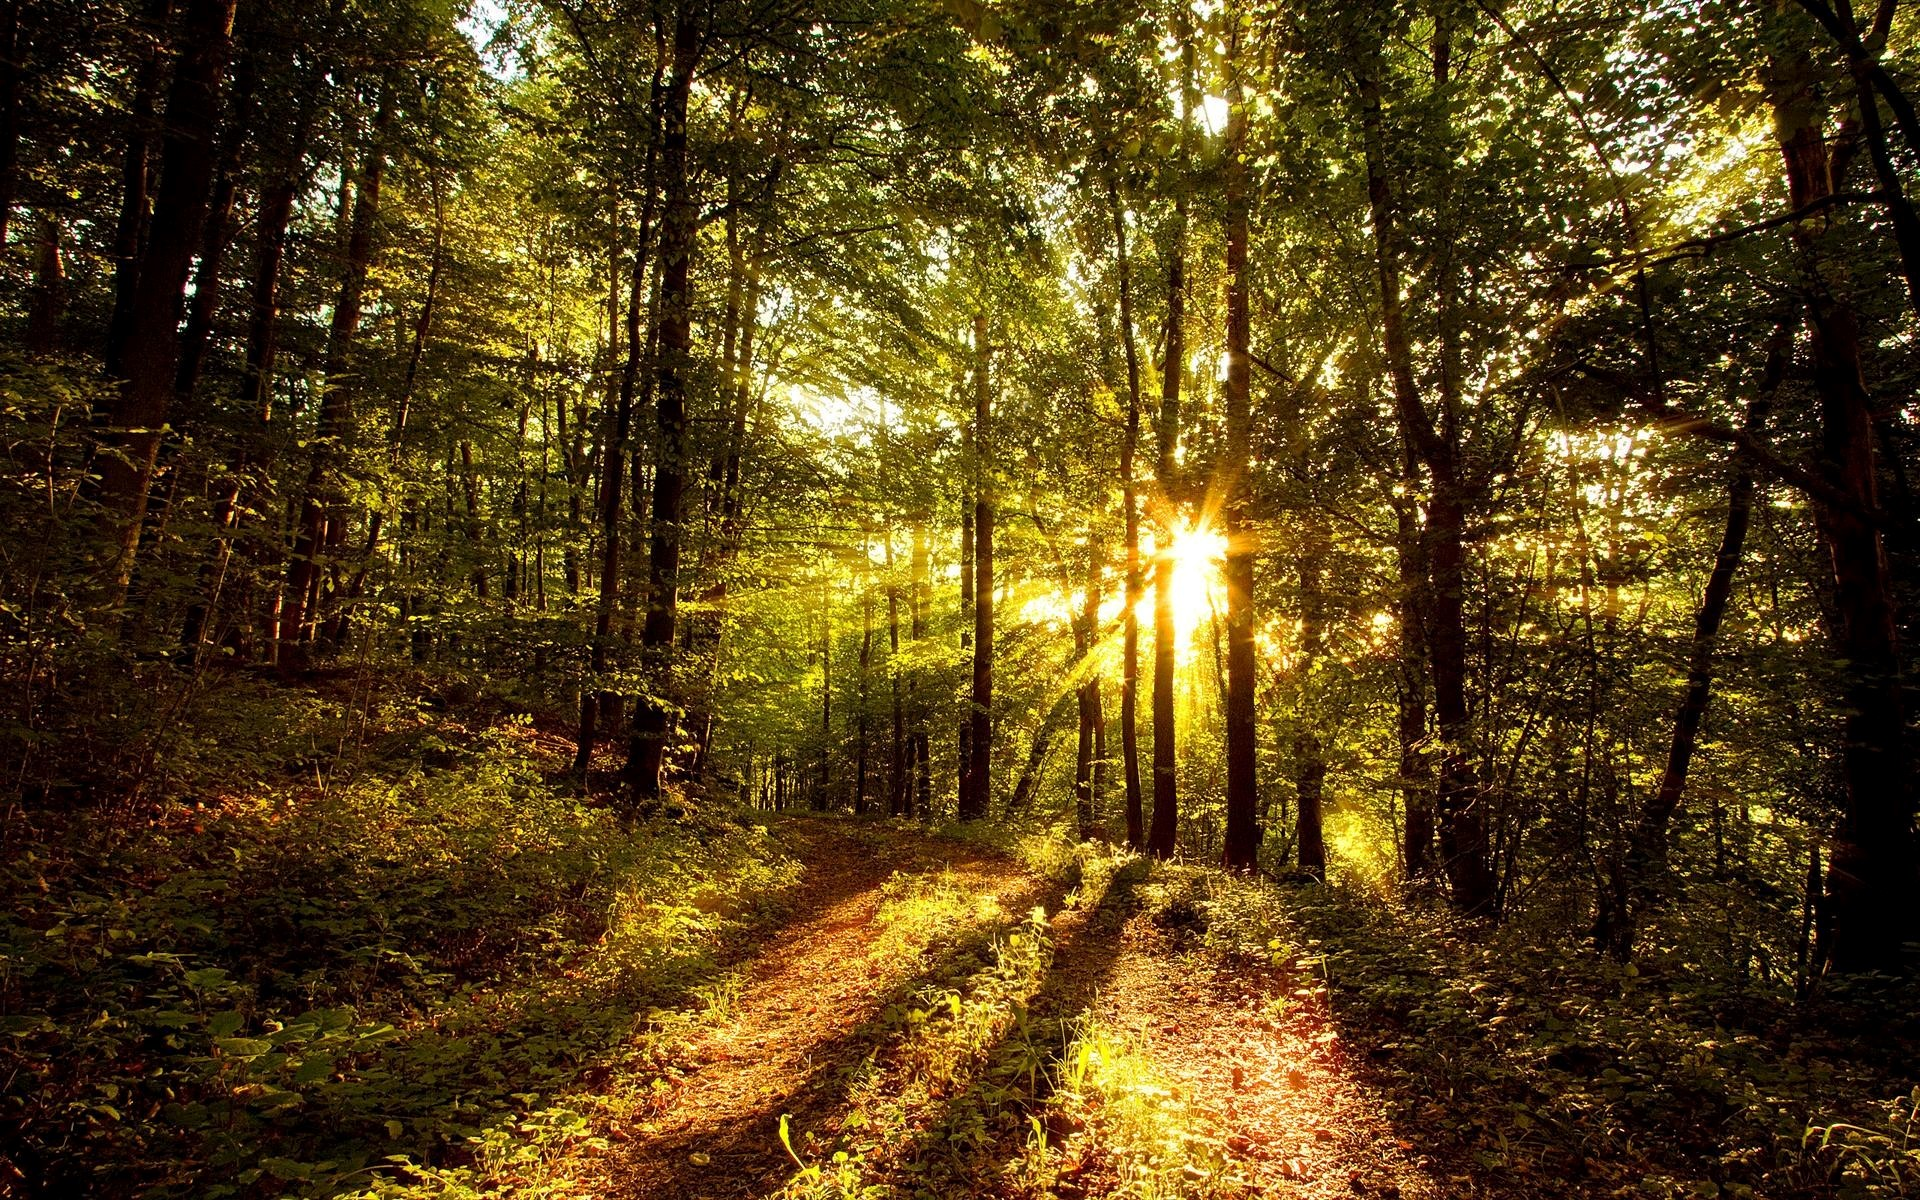 Nature Sunny Forest Wallpaper | HD Wallpapers